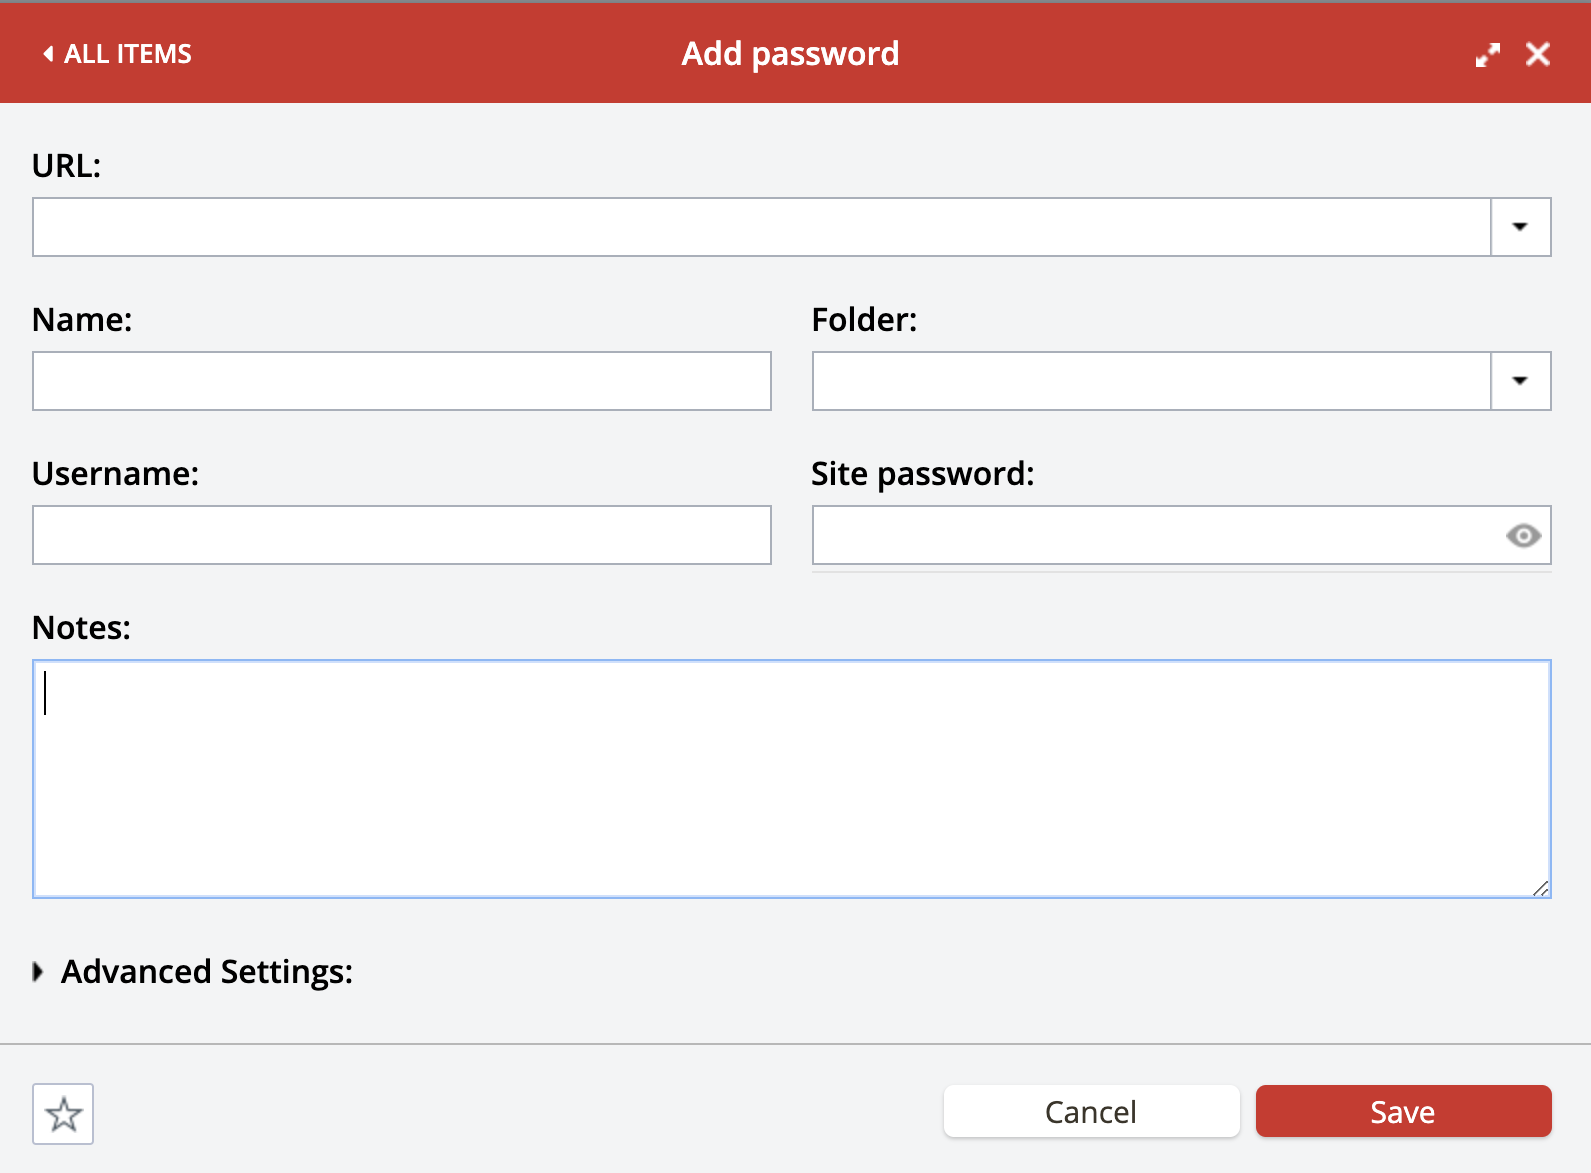 Form to add a new password to LastPass password manager, shown in Chrome browser. Part of the article by Hana Clode Marketing 'LastPass Password Manager - Apps to Make Your Life Easier'.